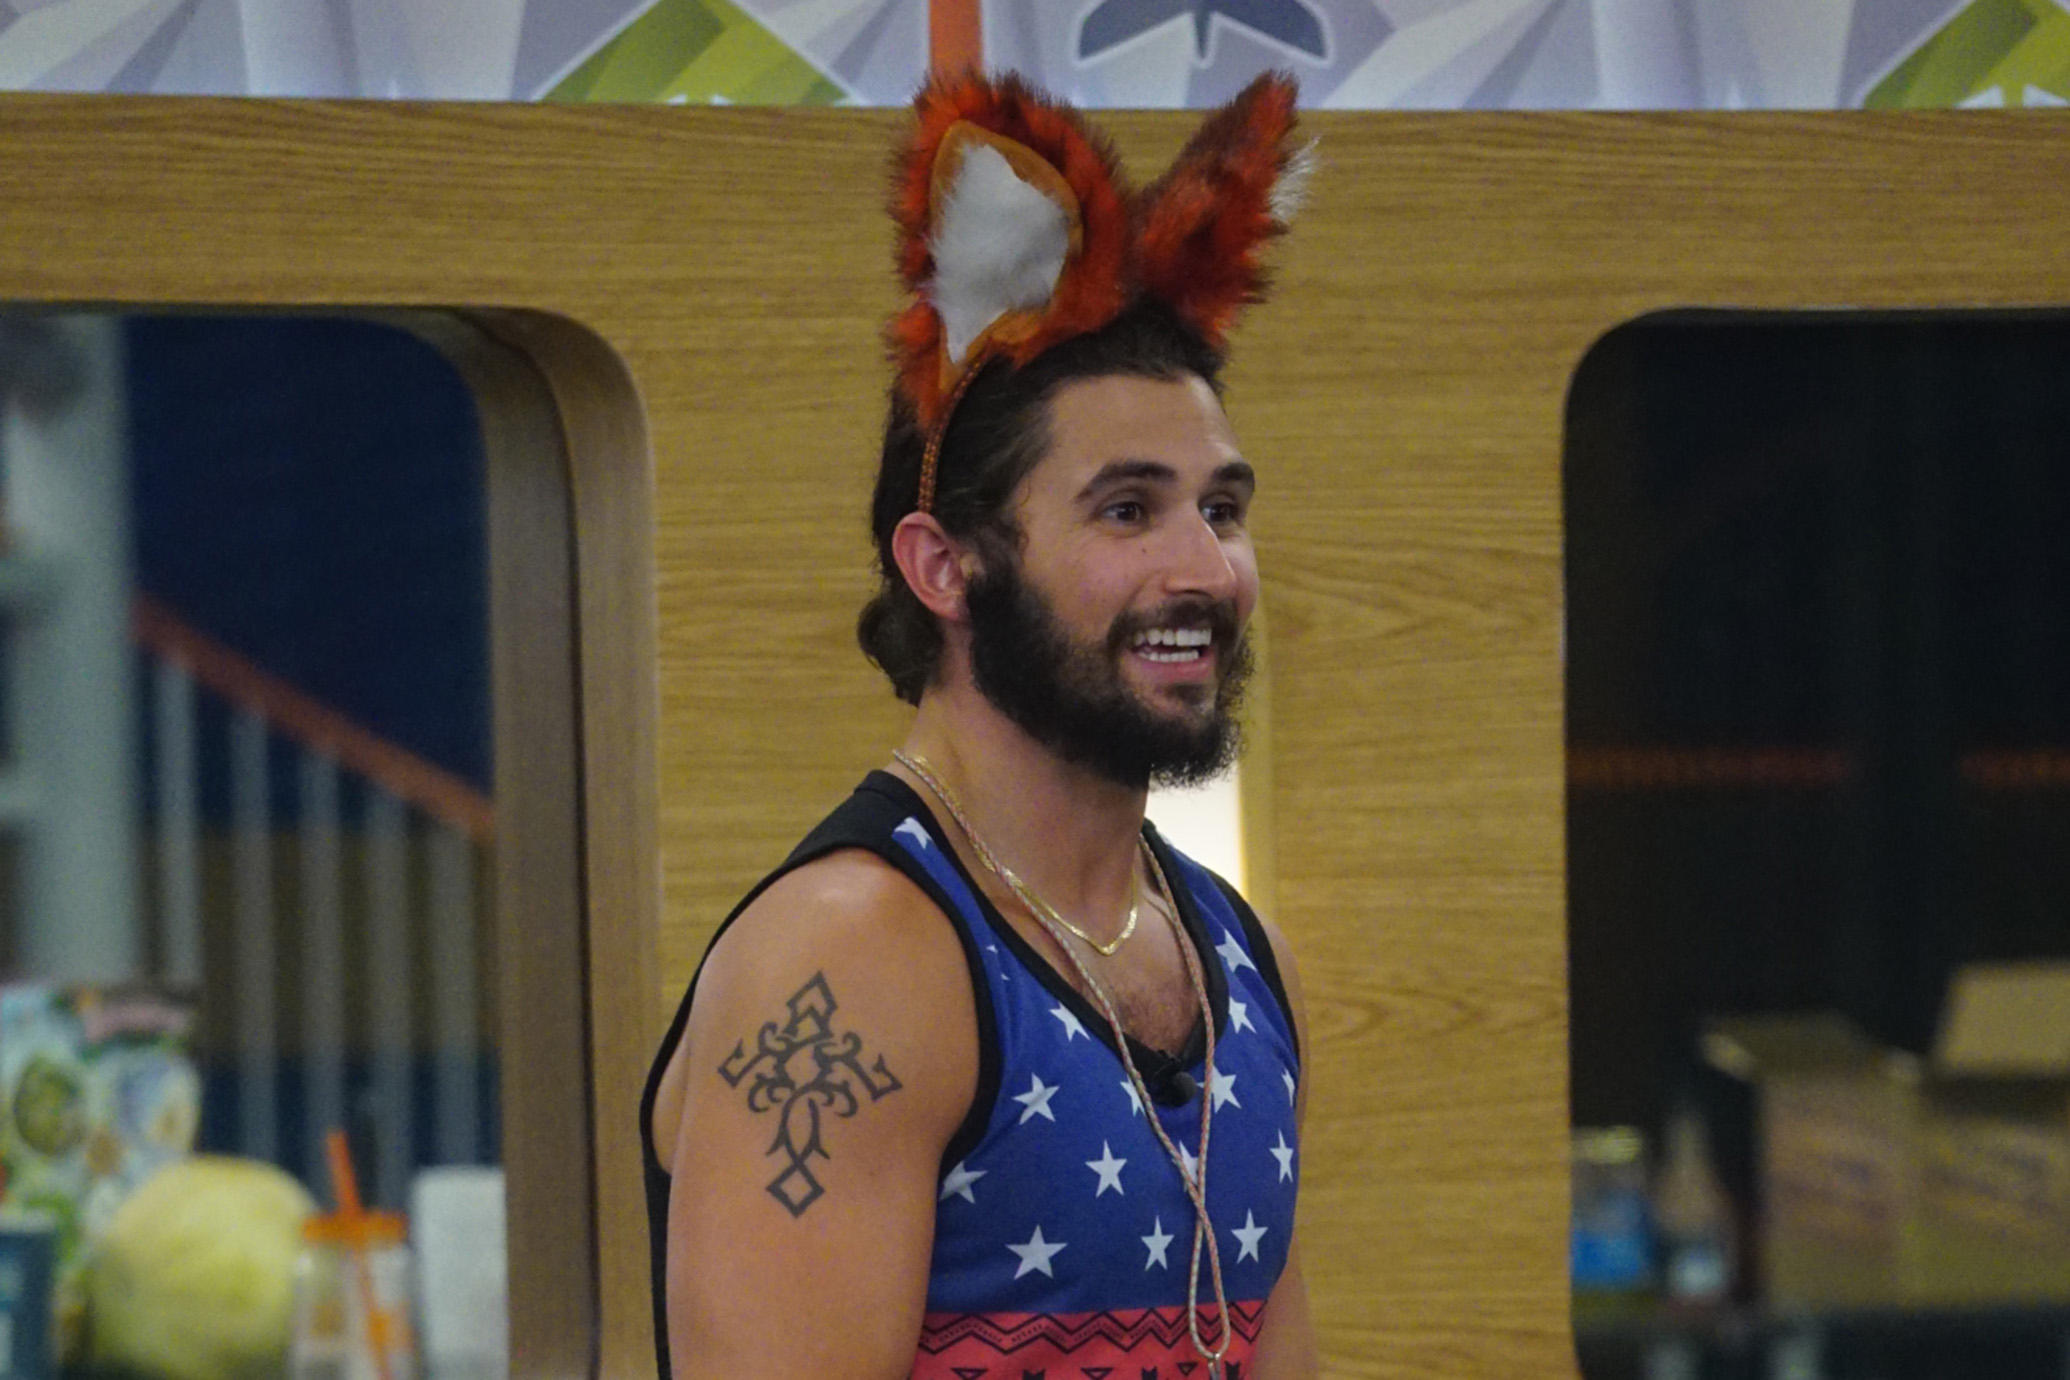 Victor, Big Brother 18